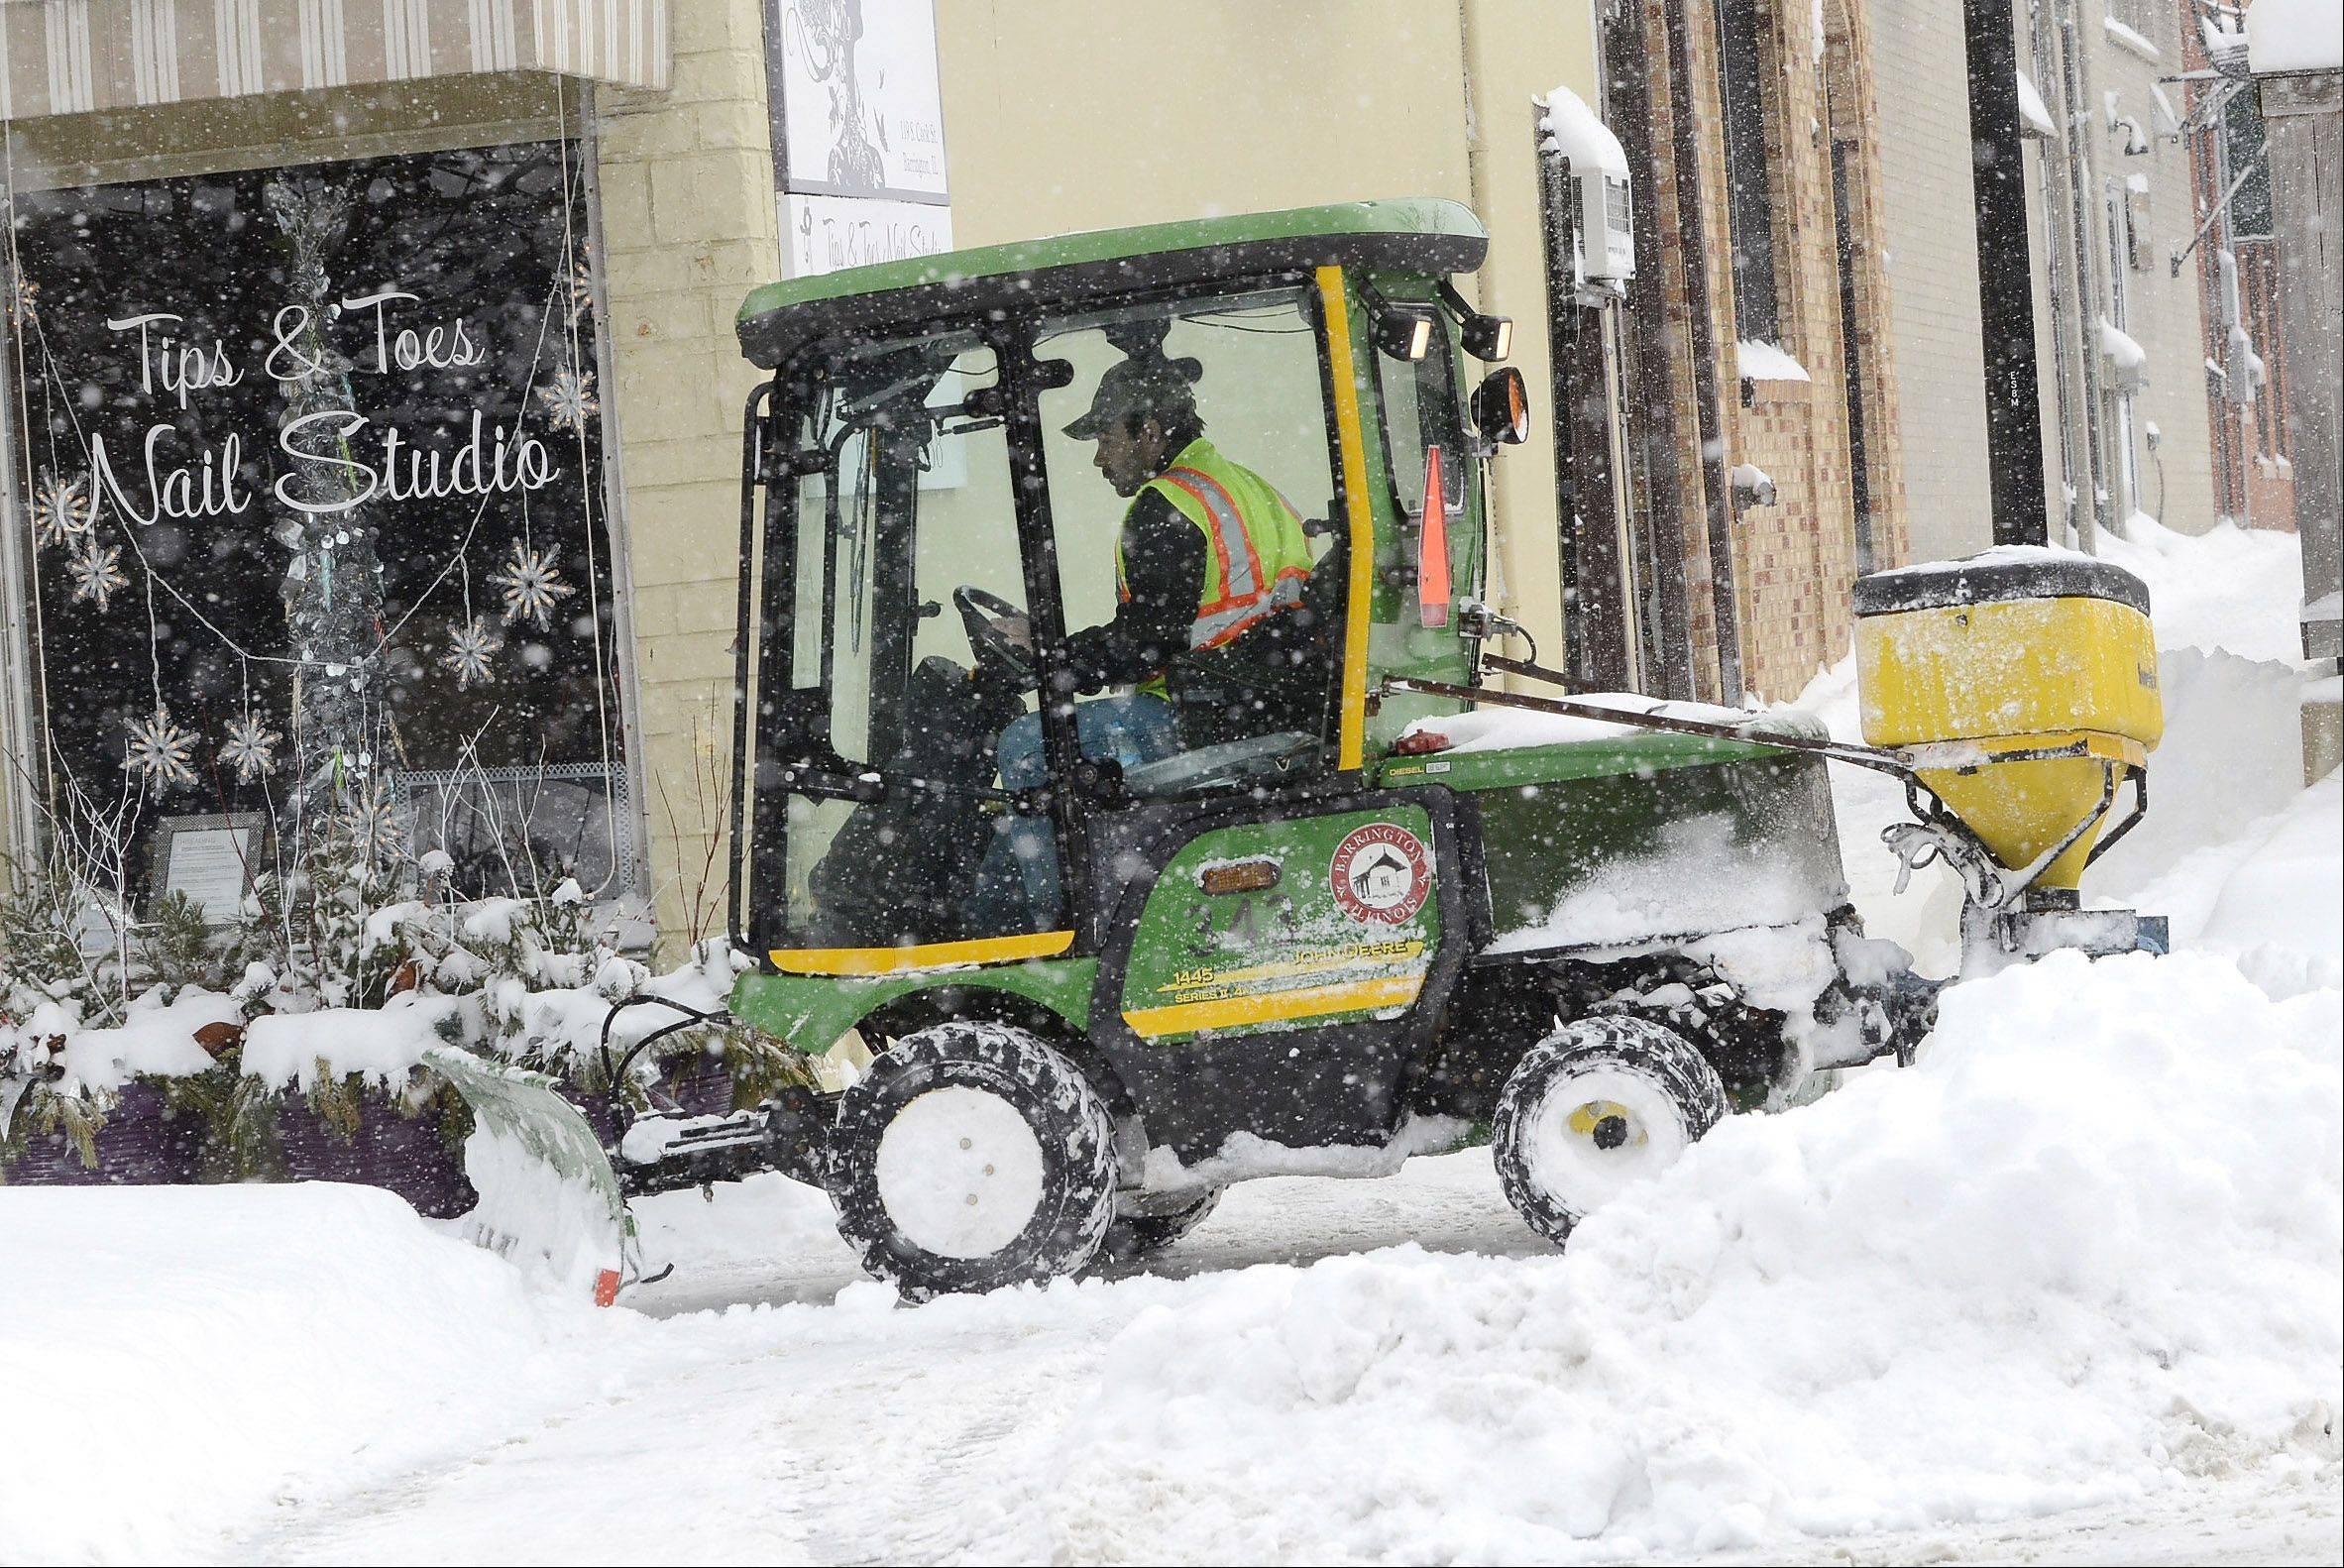 Connor Justes of Barrington Public Works says he's in the middle of a 12 hour shift that started last night at 1 a.m. plowing sidewalks and the train station in downtown Barrington.